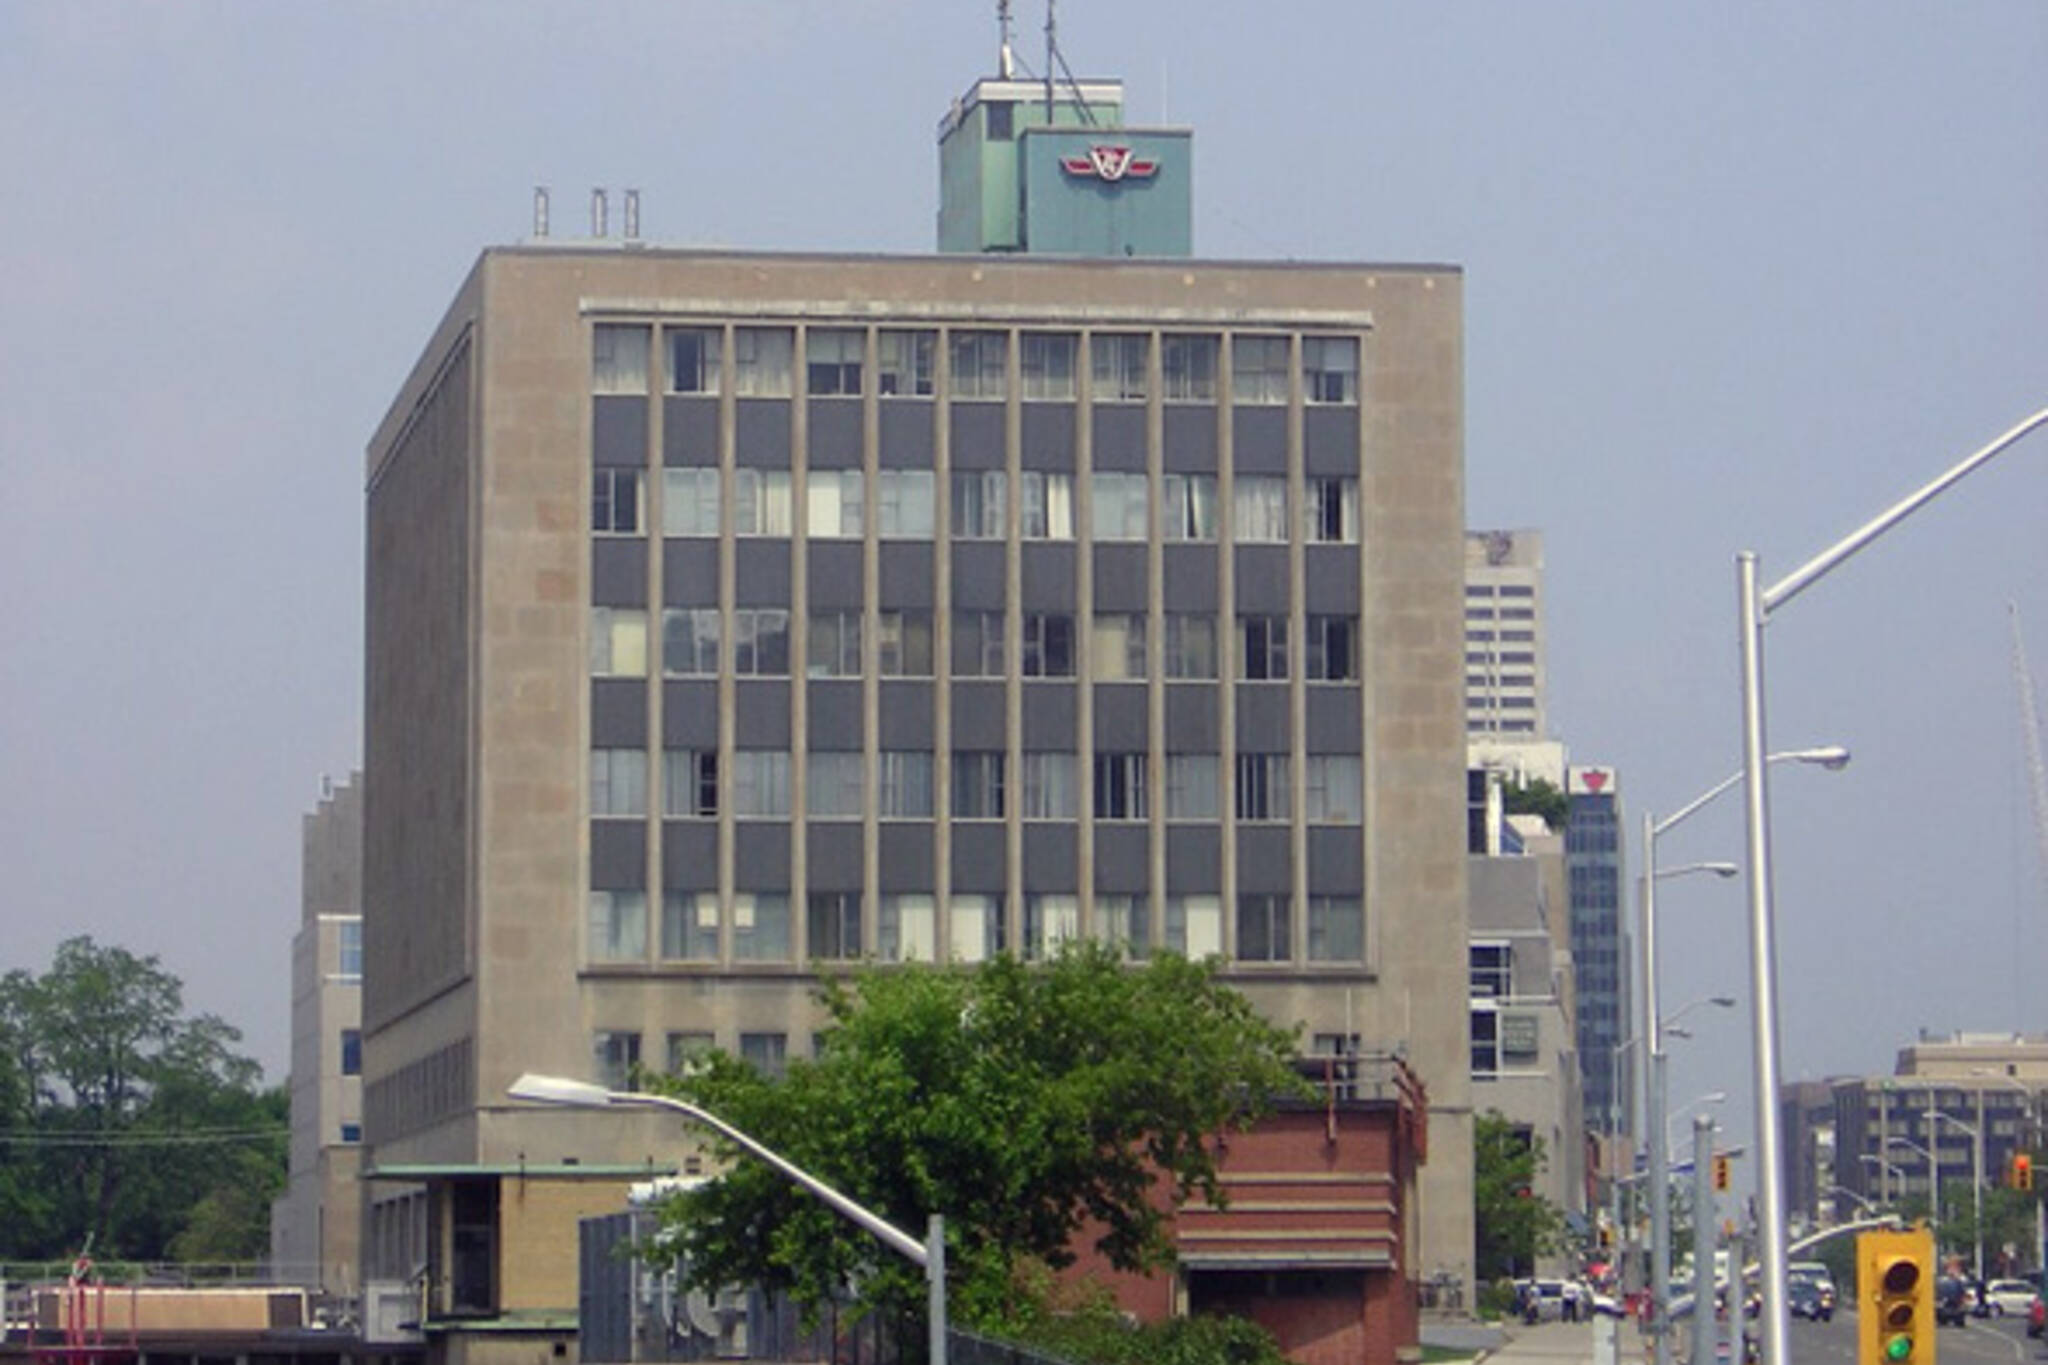 TTC headquarters